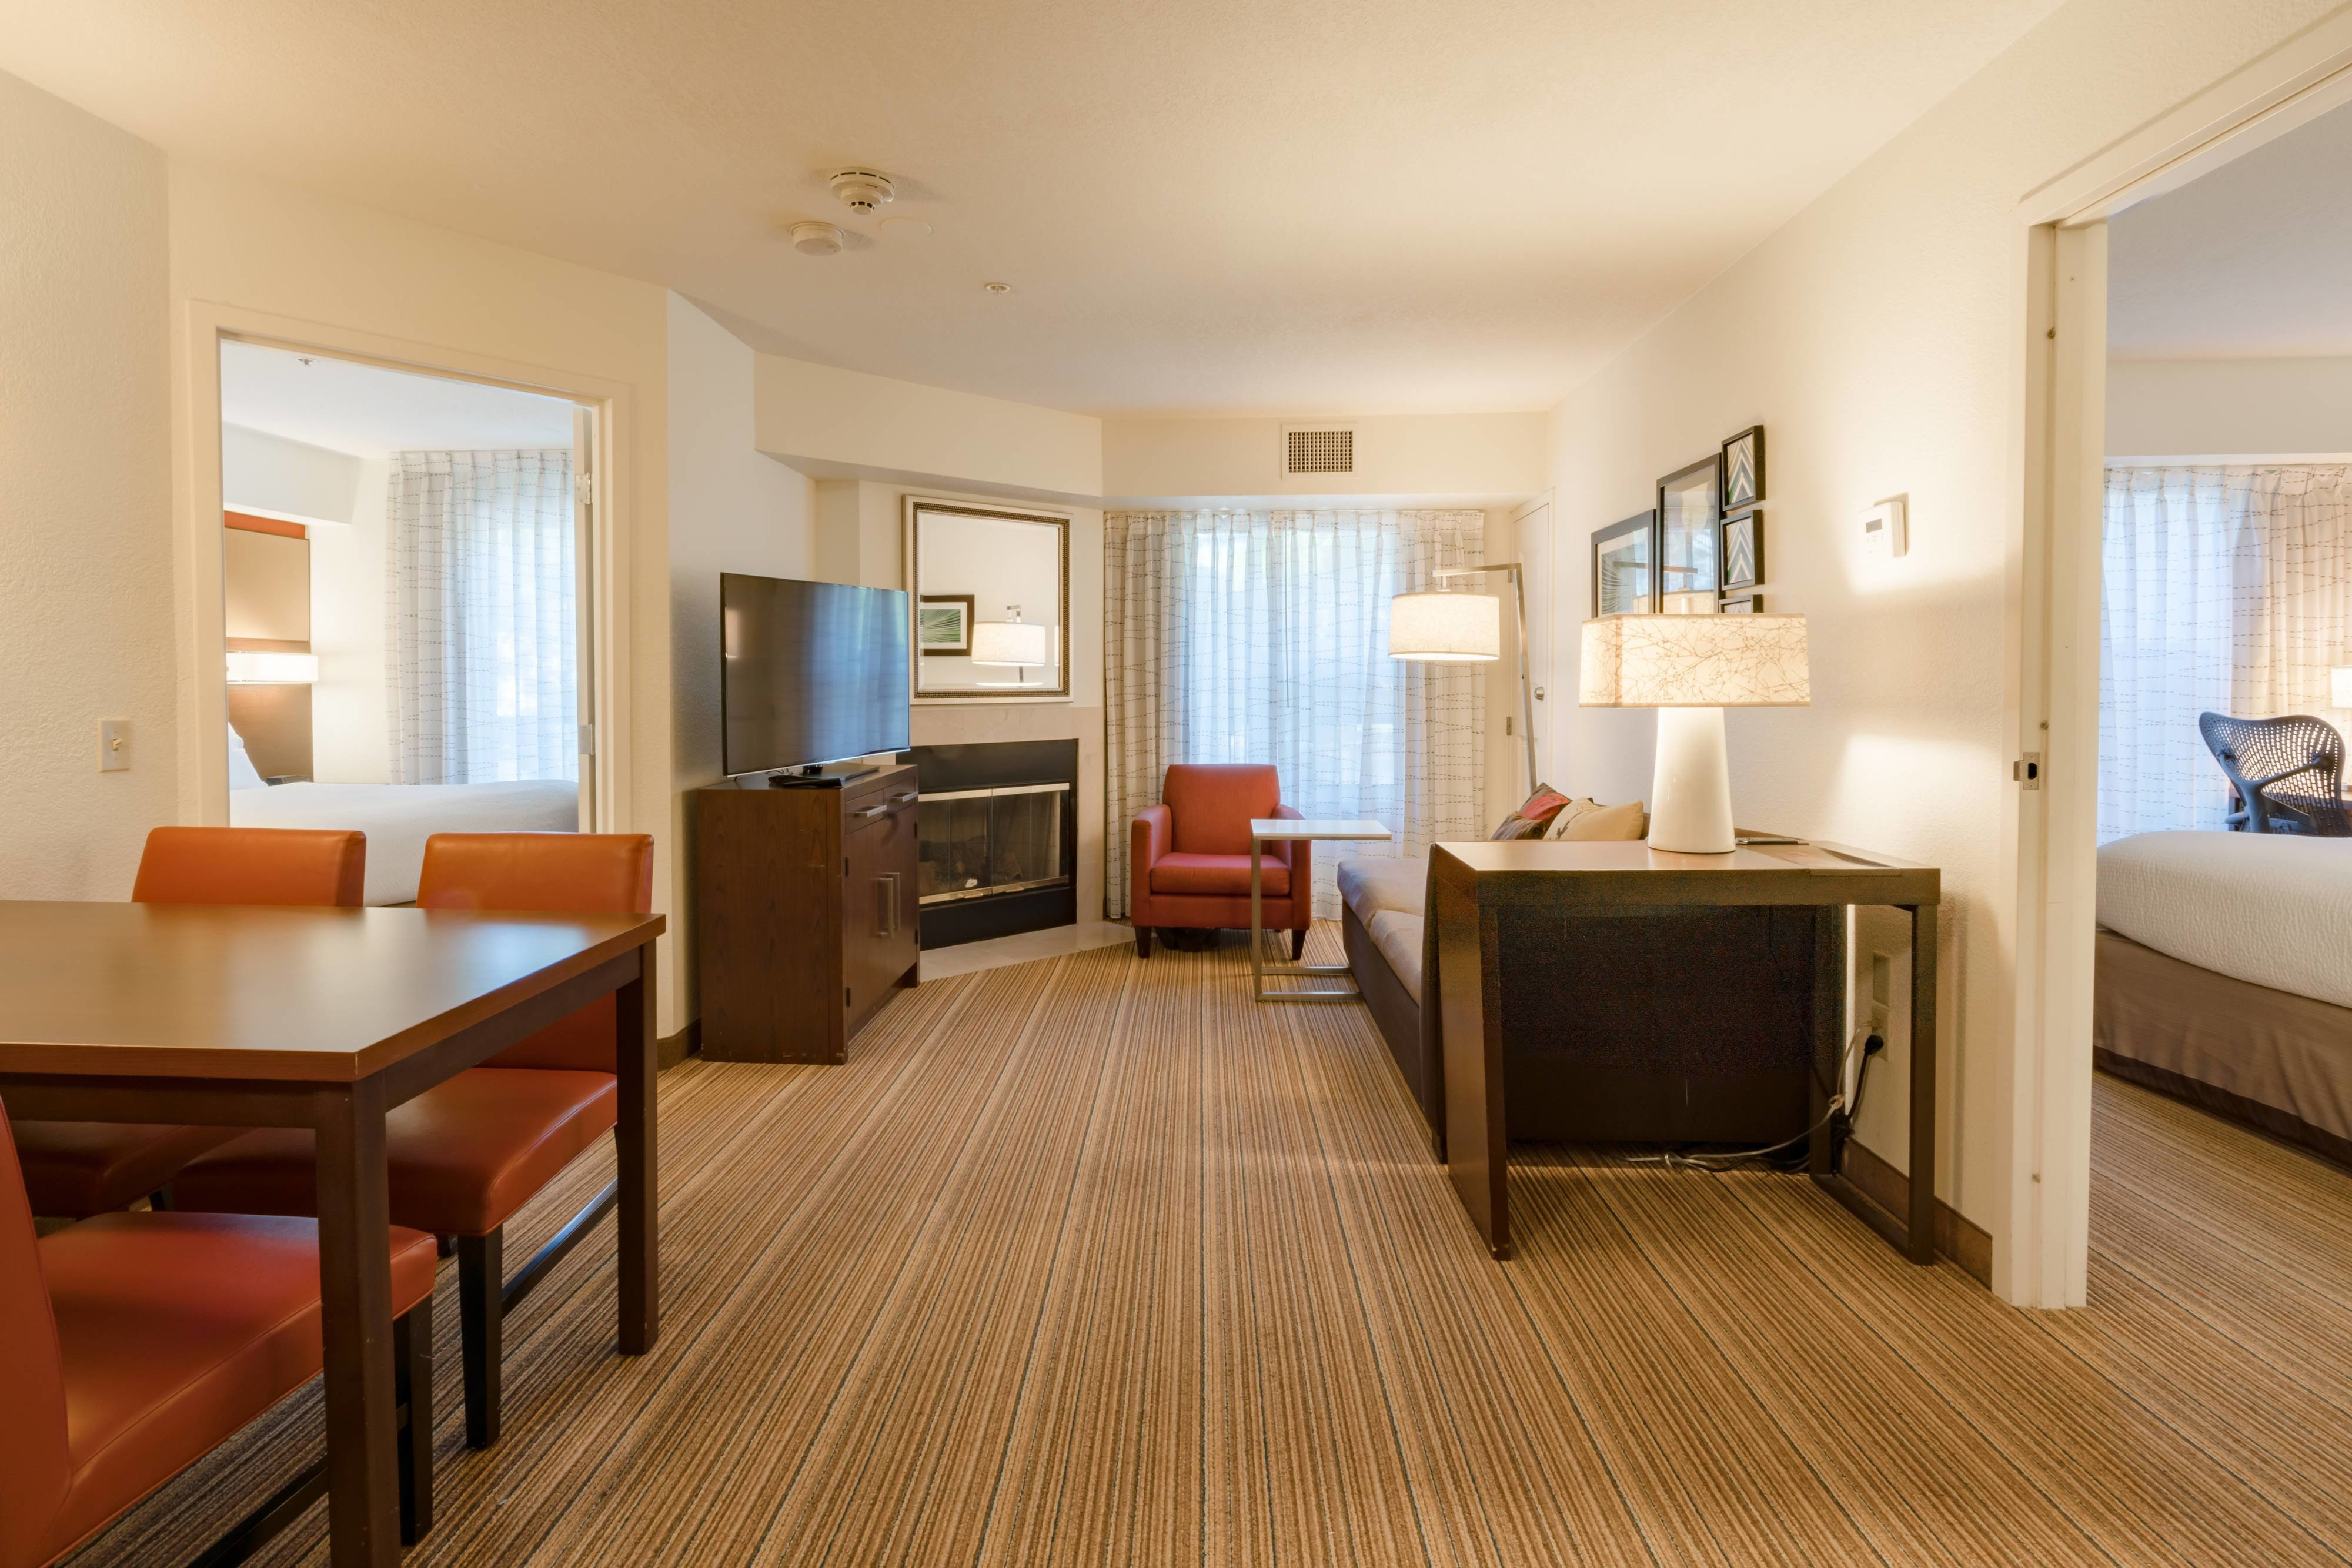 Best Hotels In Carlsbad Residence Inn Marriott Carlsbad Hotel With Pictures